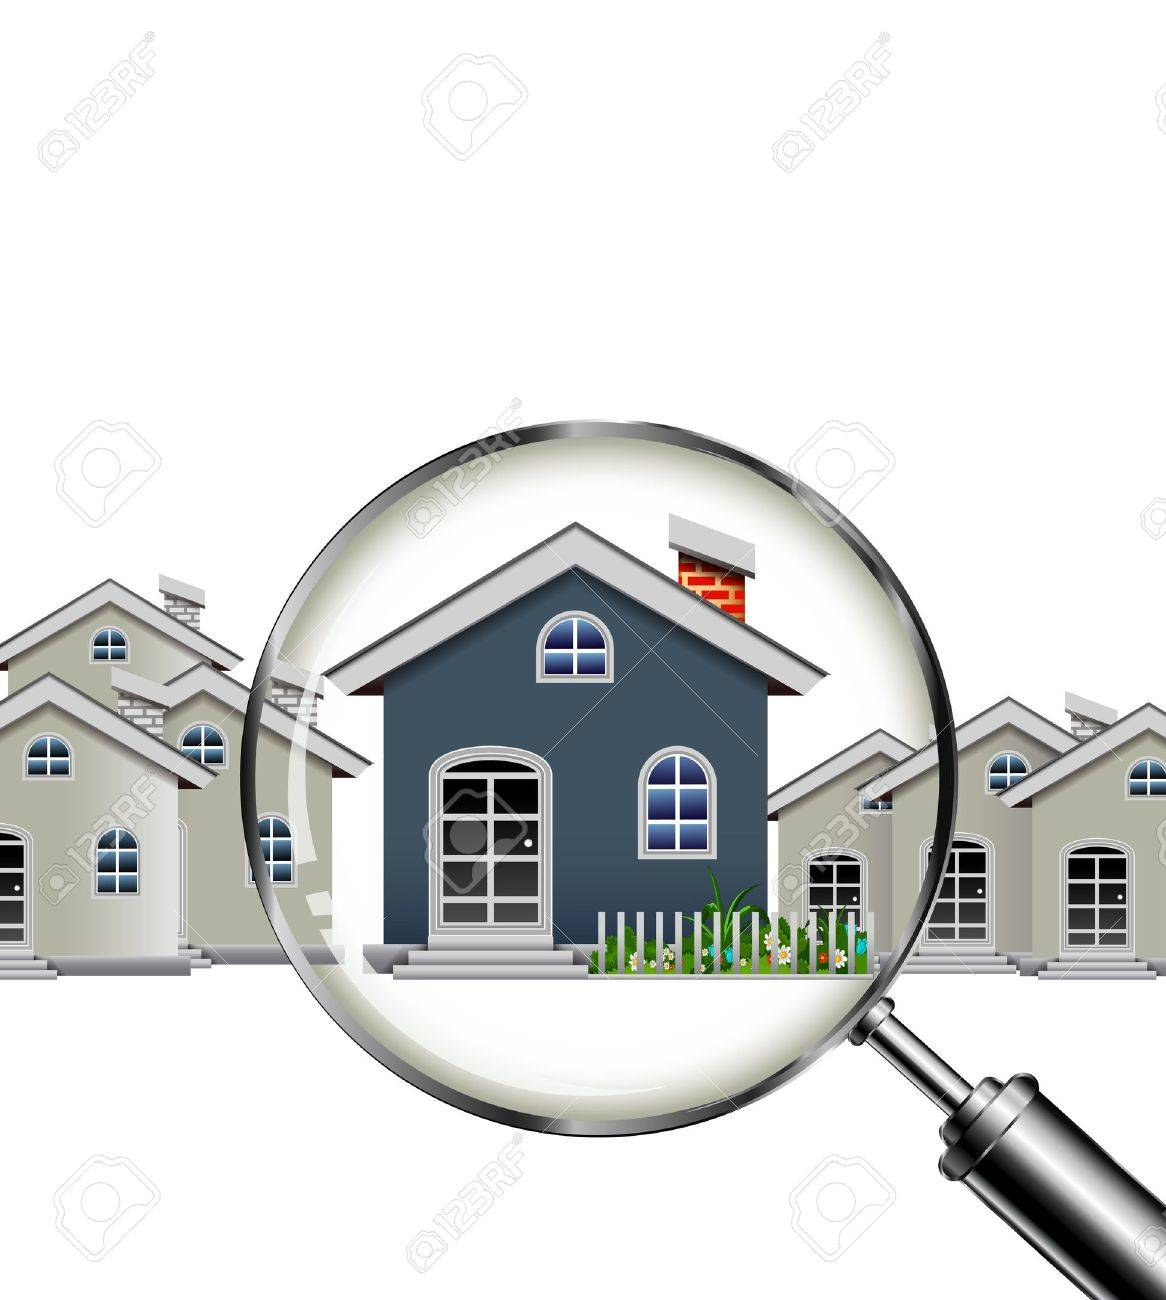 House search for you design - 33024669